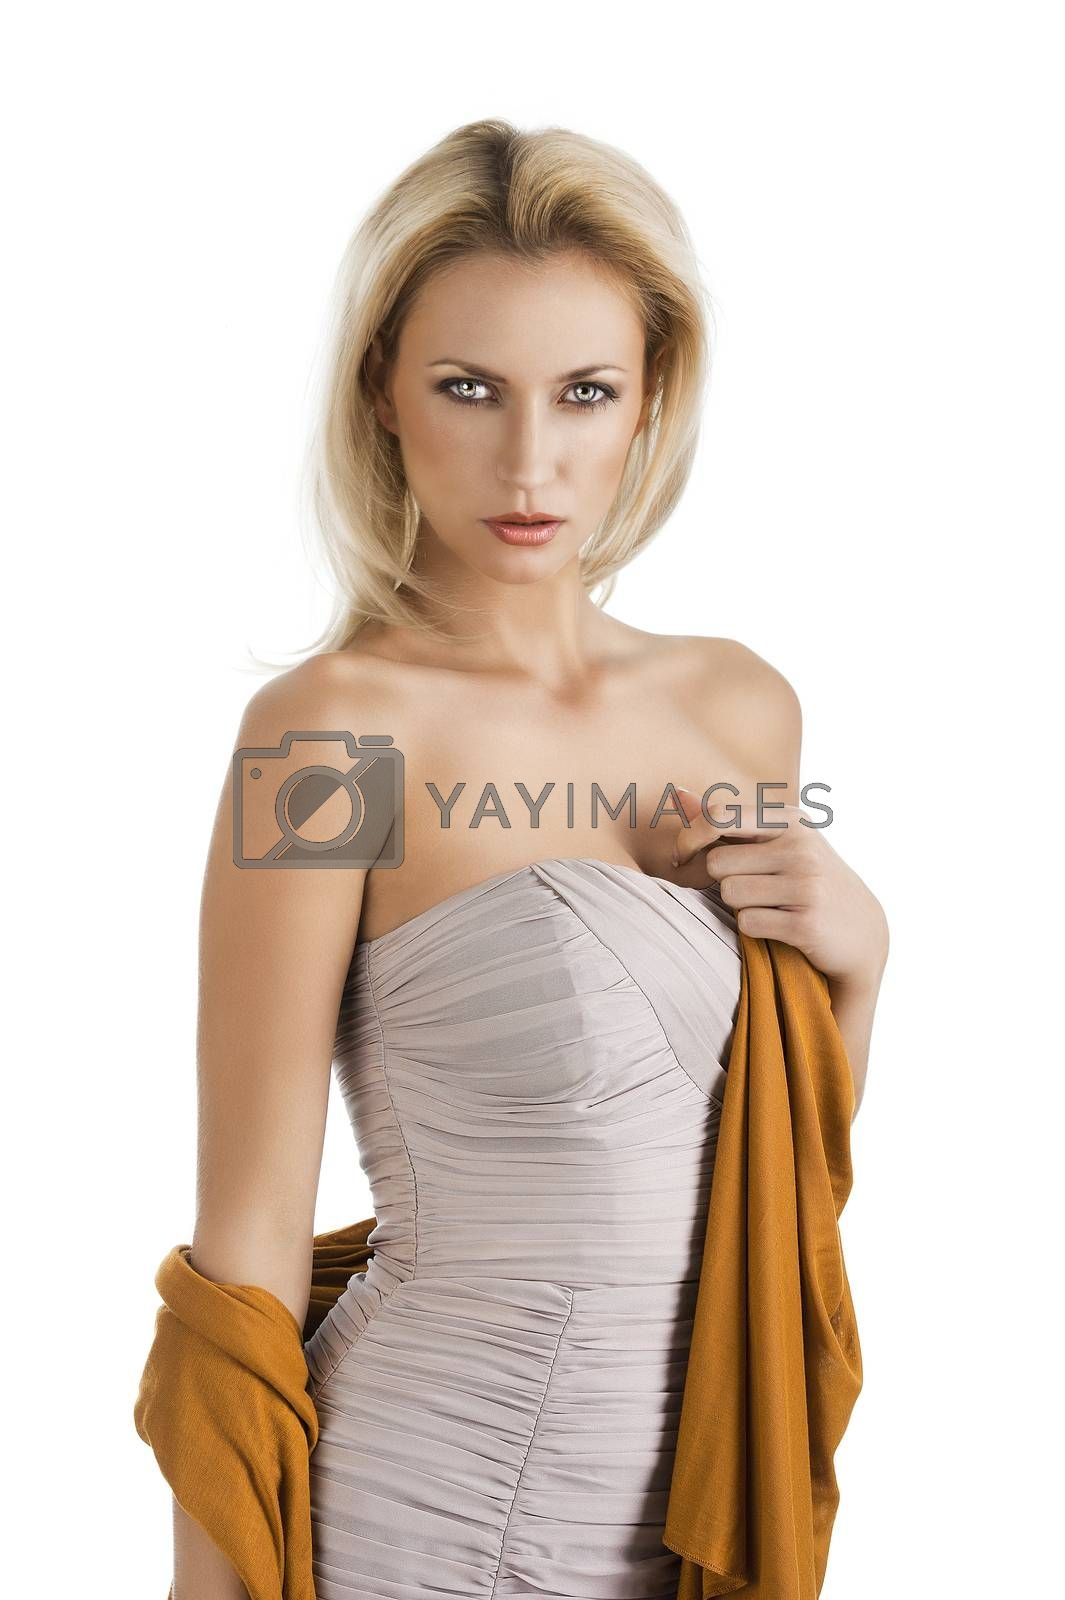 Royalty free image of blond girl in elegant dress, her left hand is on the chest by fotoCD